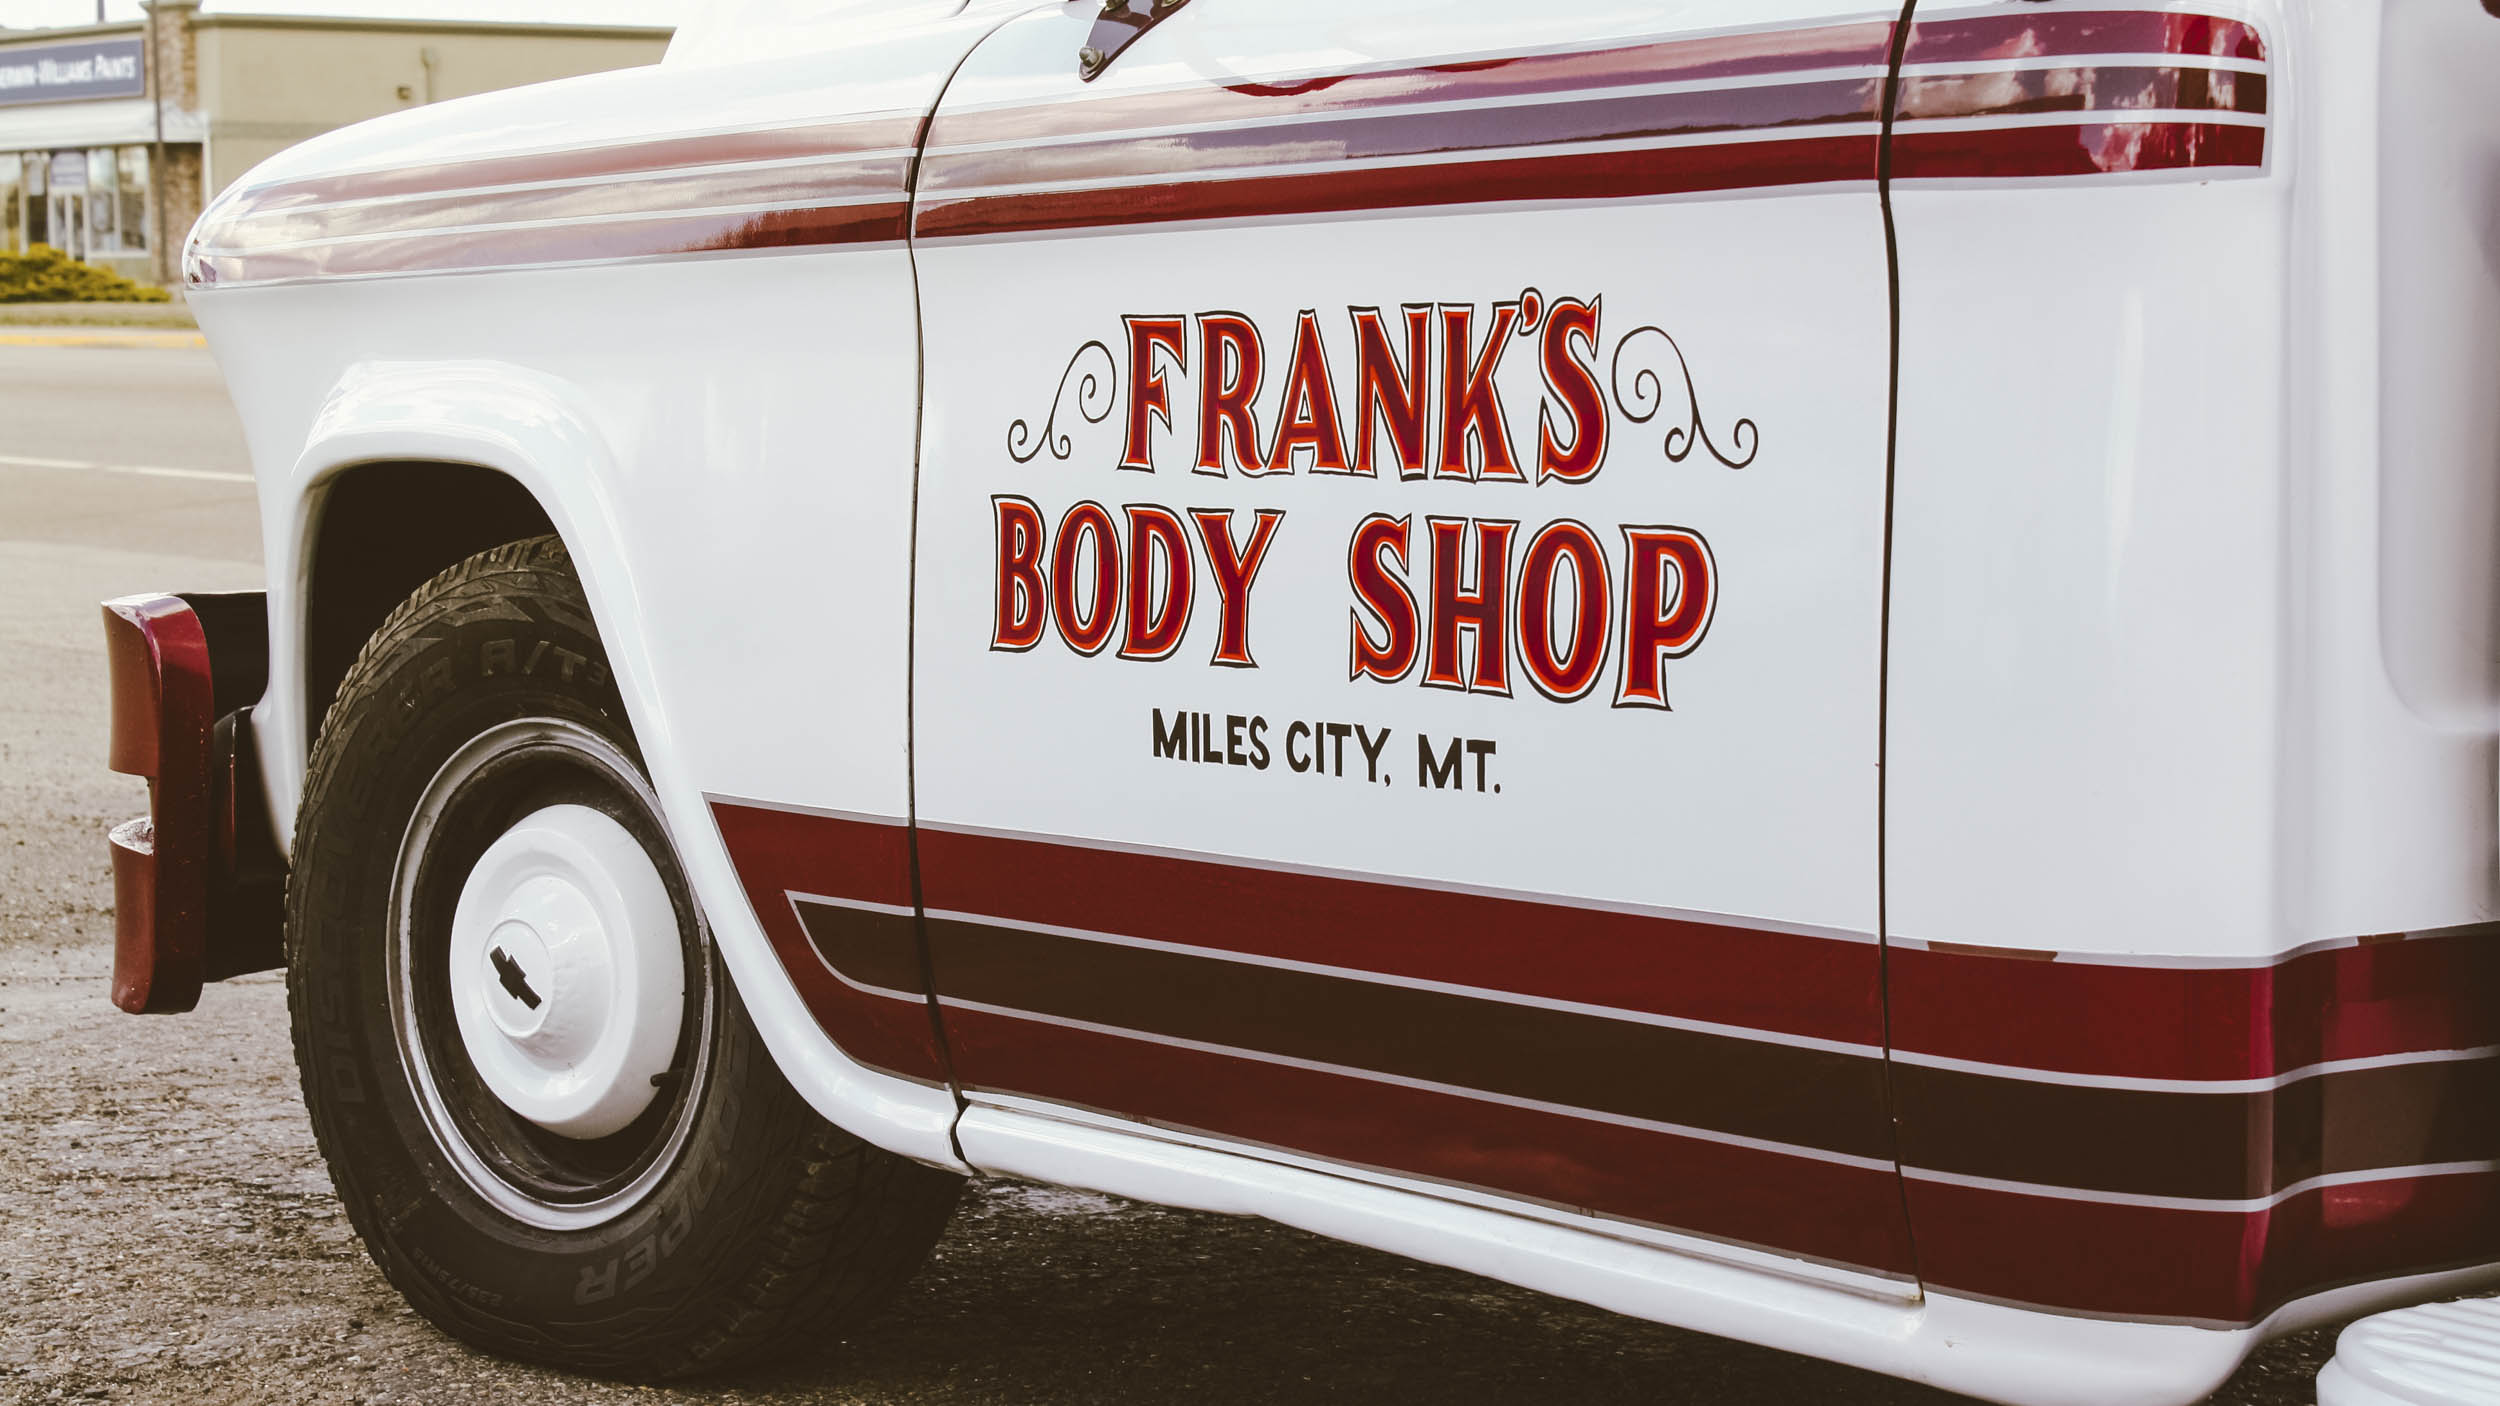 Frank Stoltz opened Frank's Body Shop in 1955 with a single truck: this 1955 Chevrolet 3/4-ton pickup.